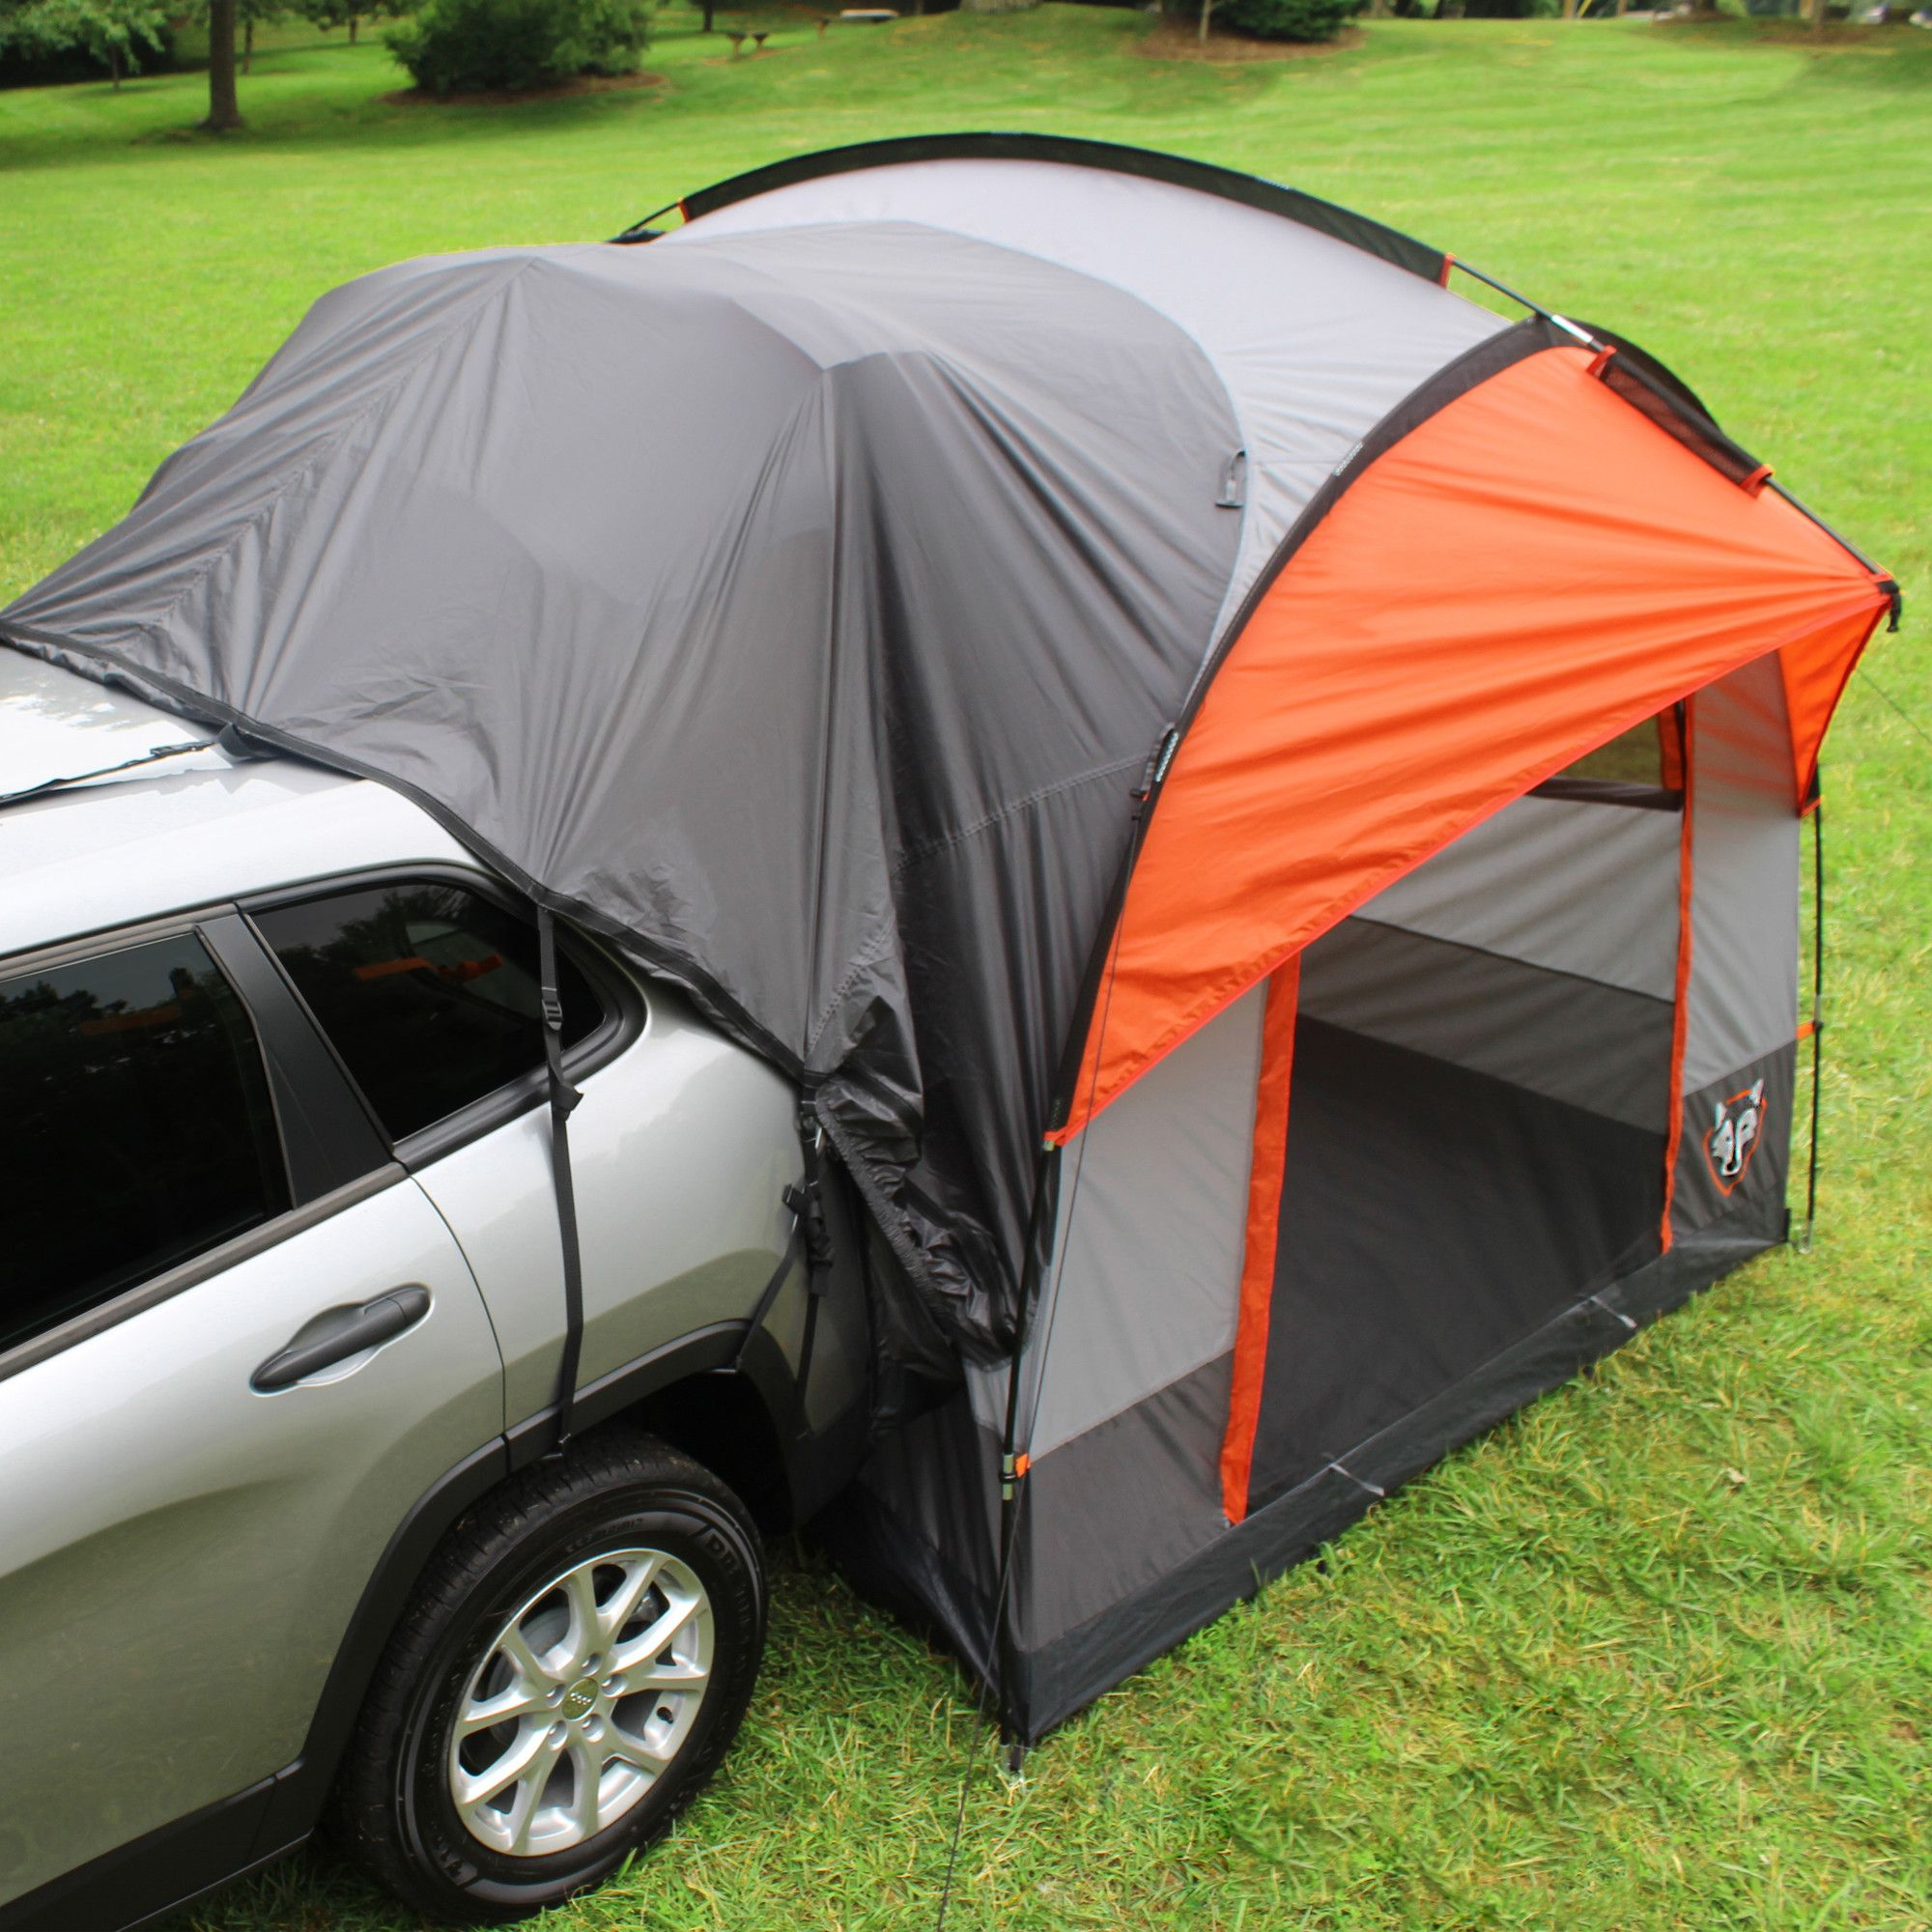 Tents that hook up to suv